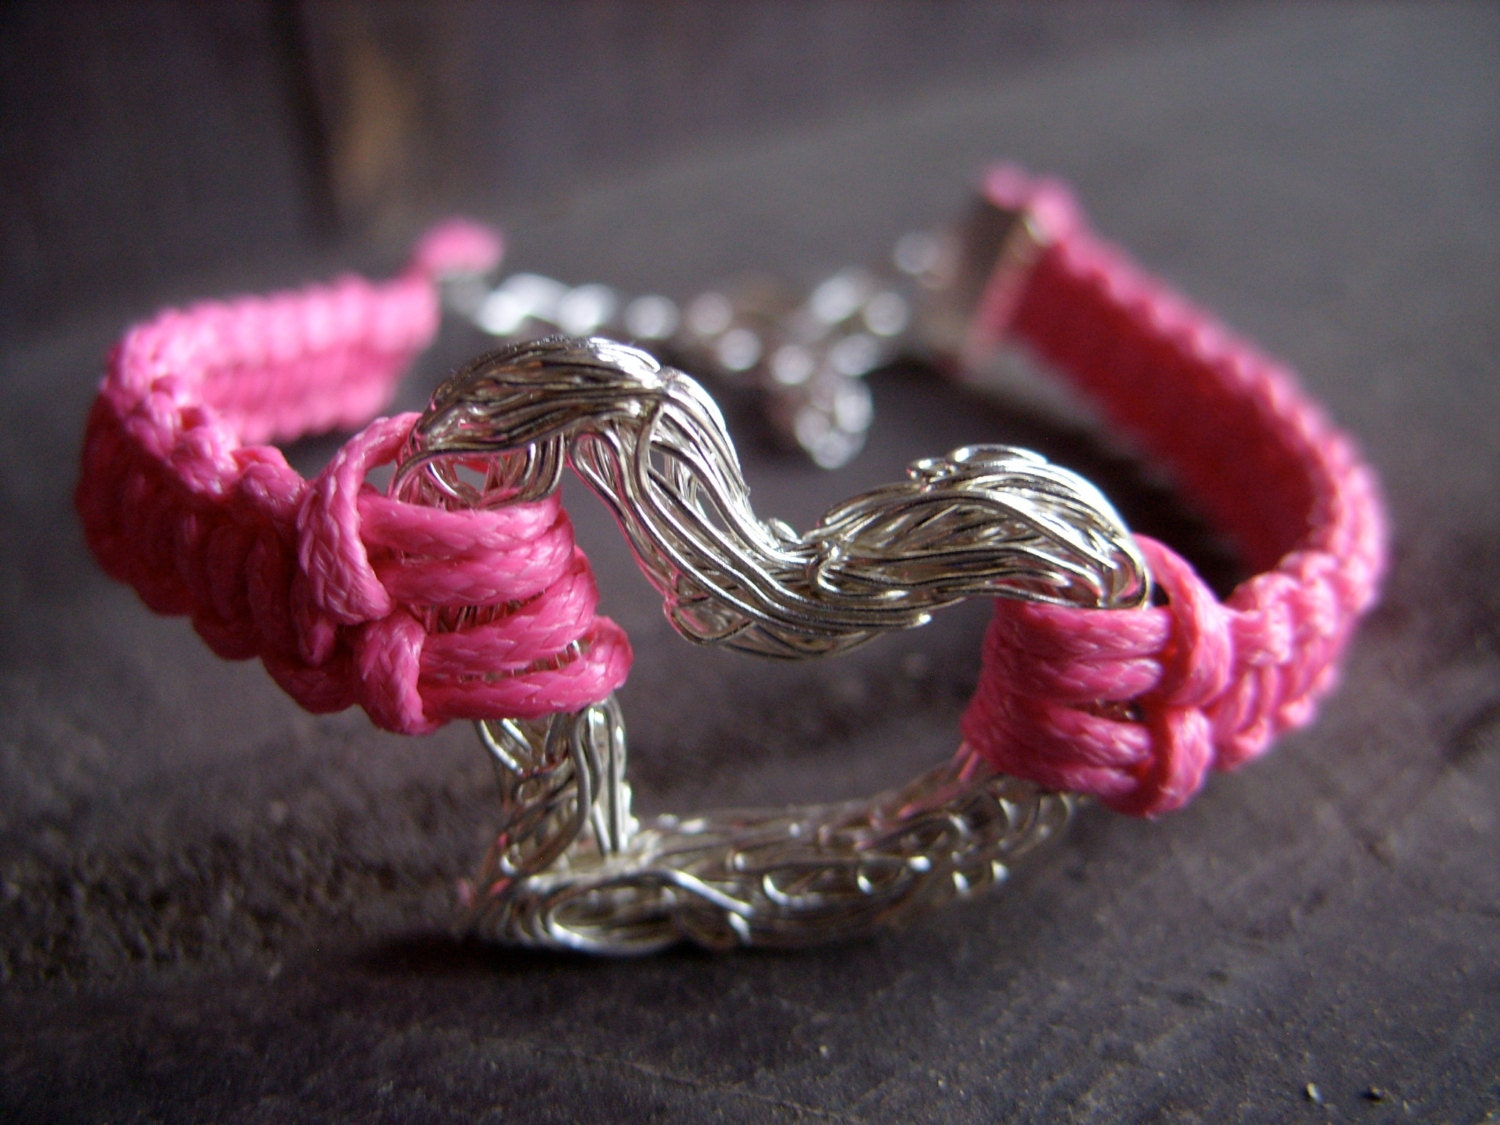 mother's day heart bracelet valentines day for her pink silver love wire heart macrame bracelet friendship bracelet braided jewelry - MageBraids